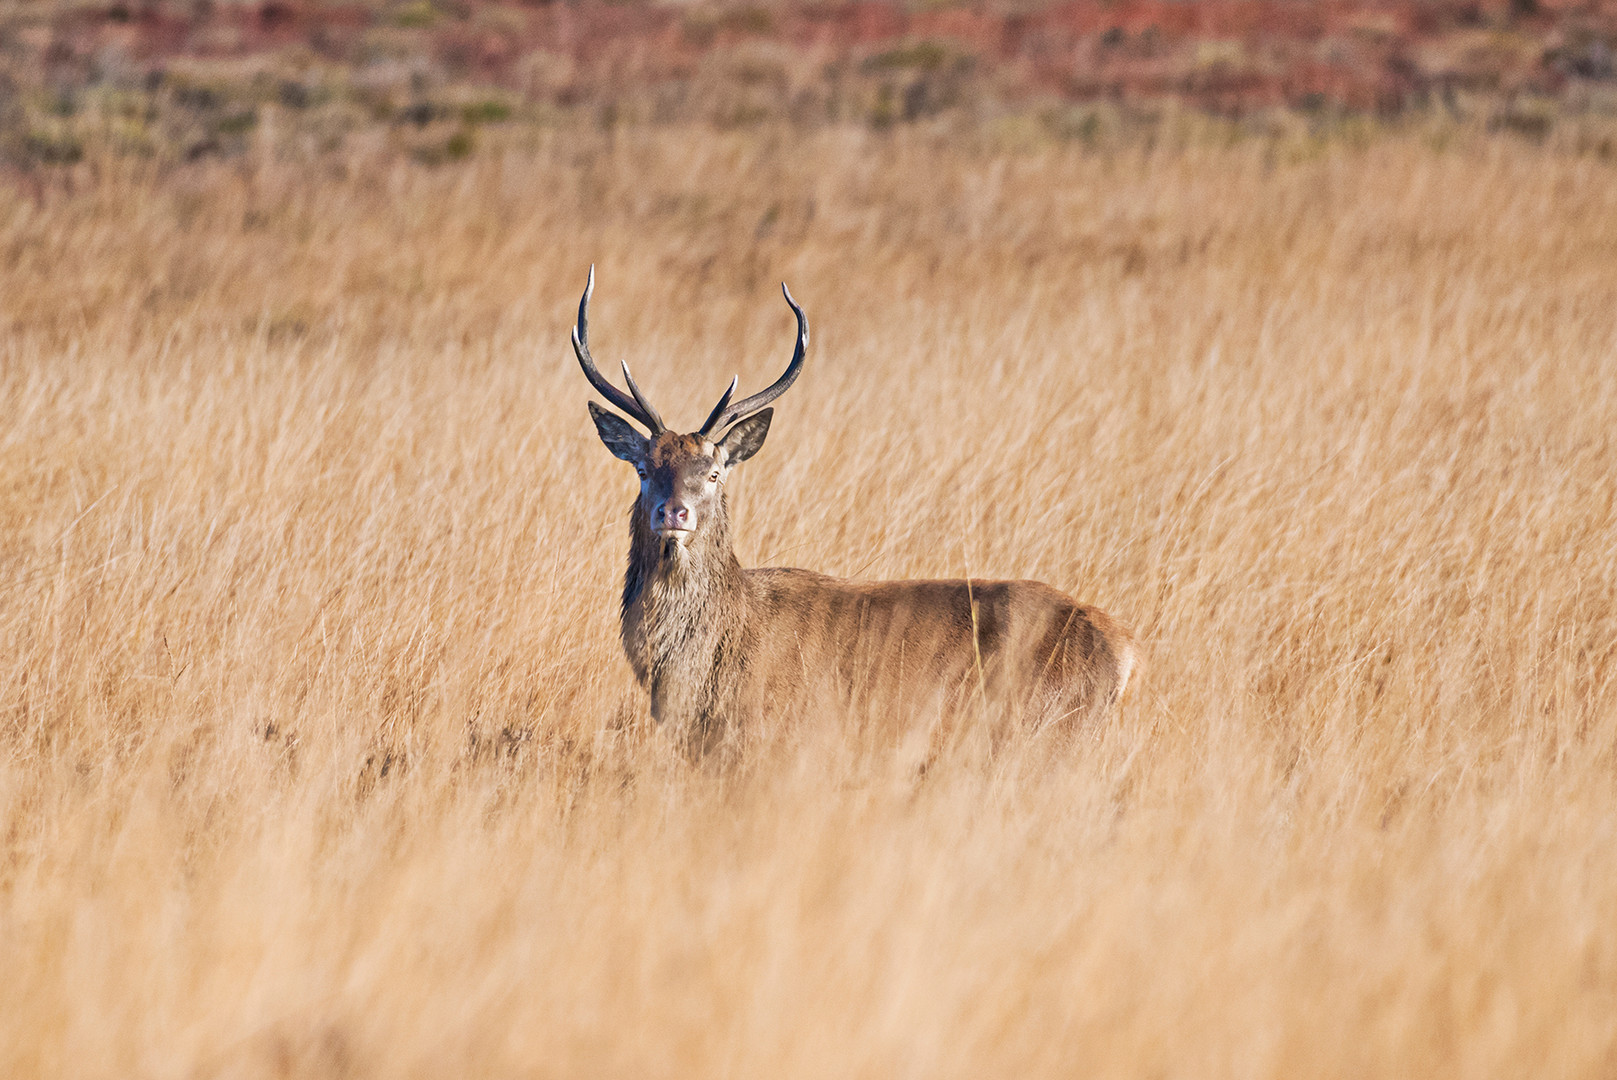 Wildlife_Photography_Course_Stag4.jpg